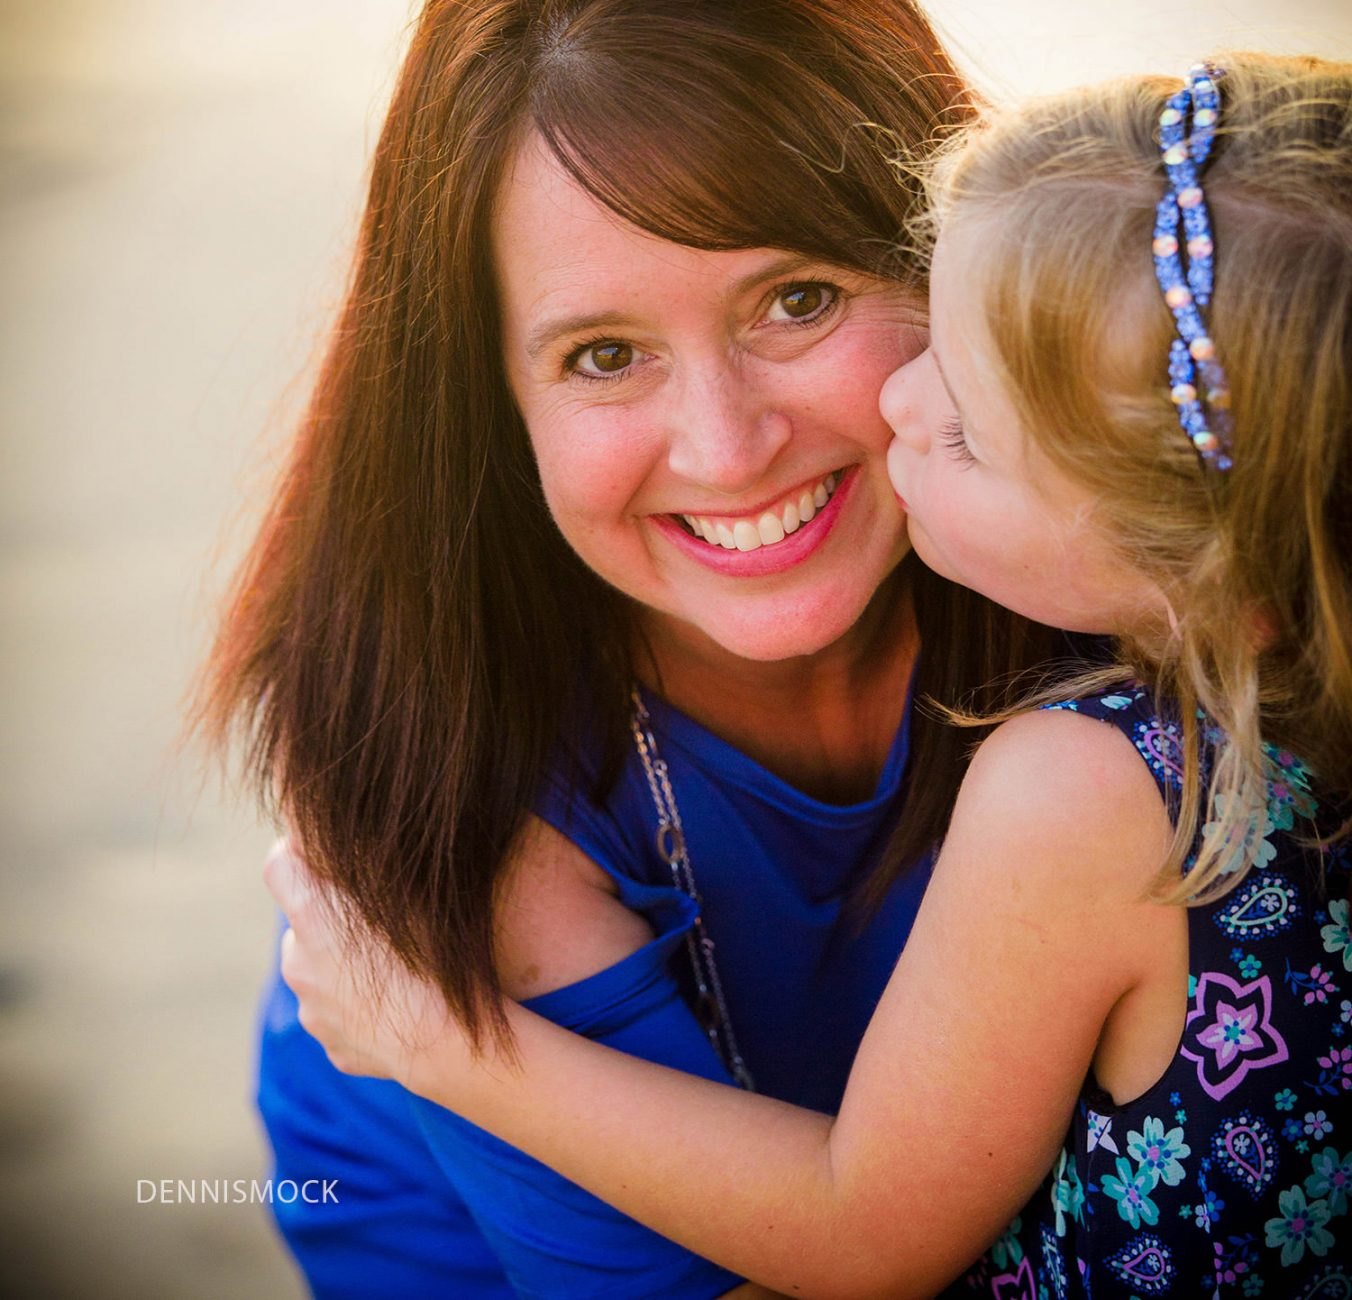 Kisses for my mom brings smiles at La Jolla Family photographer Dennis Mock